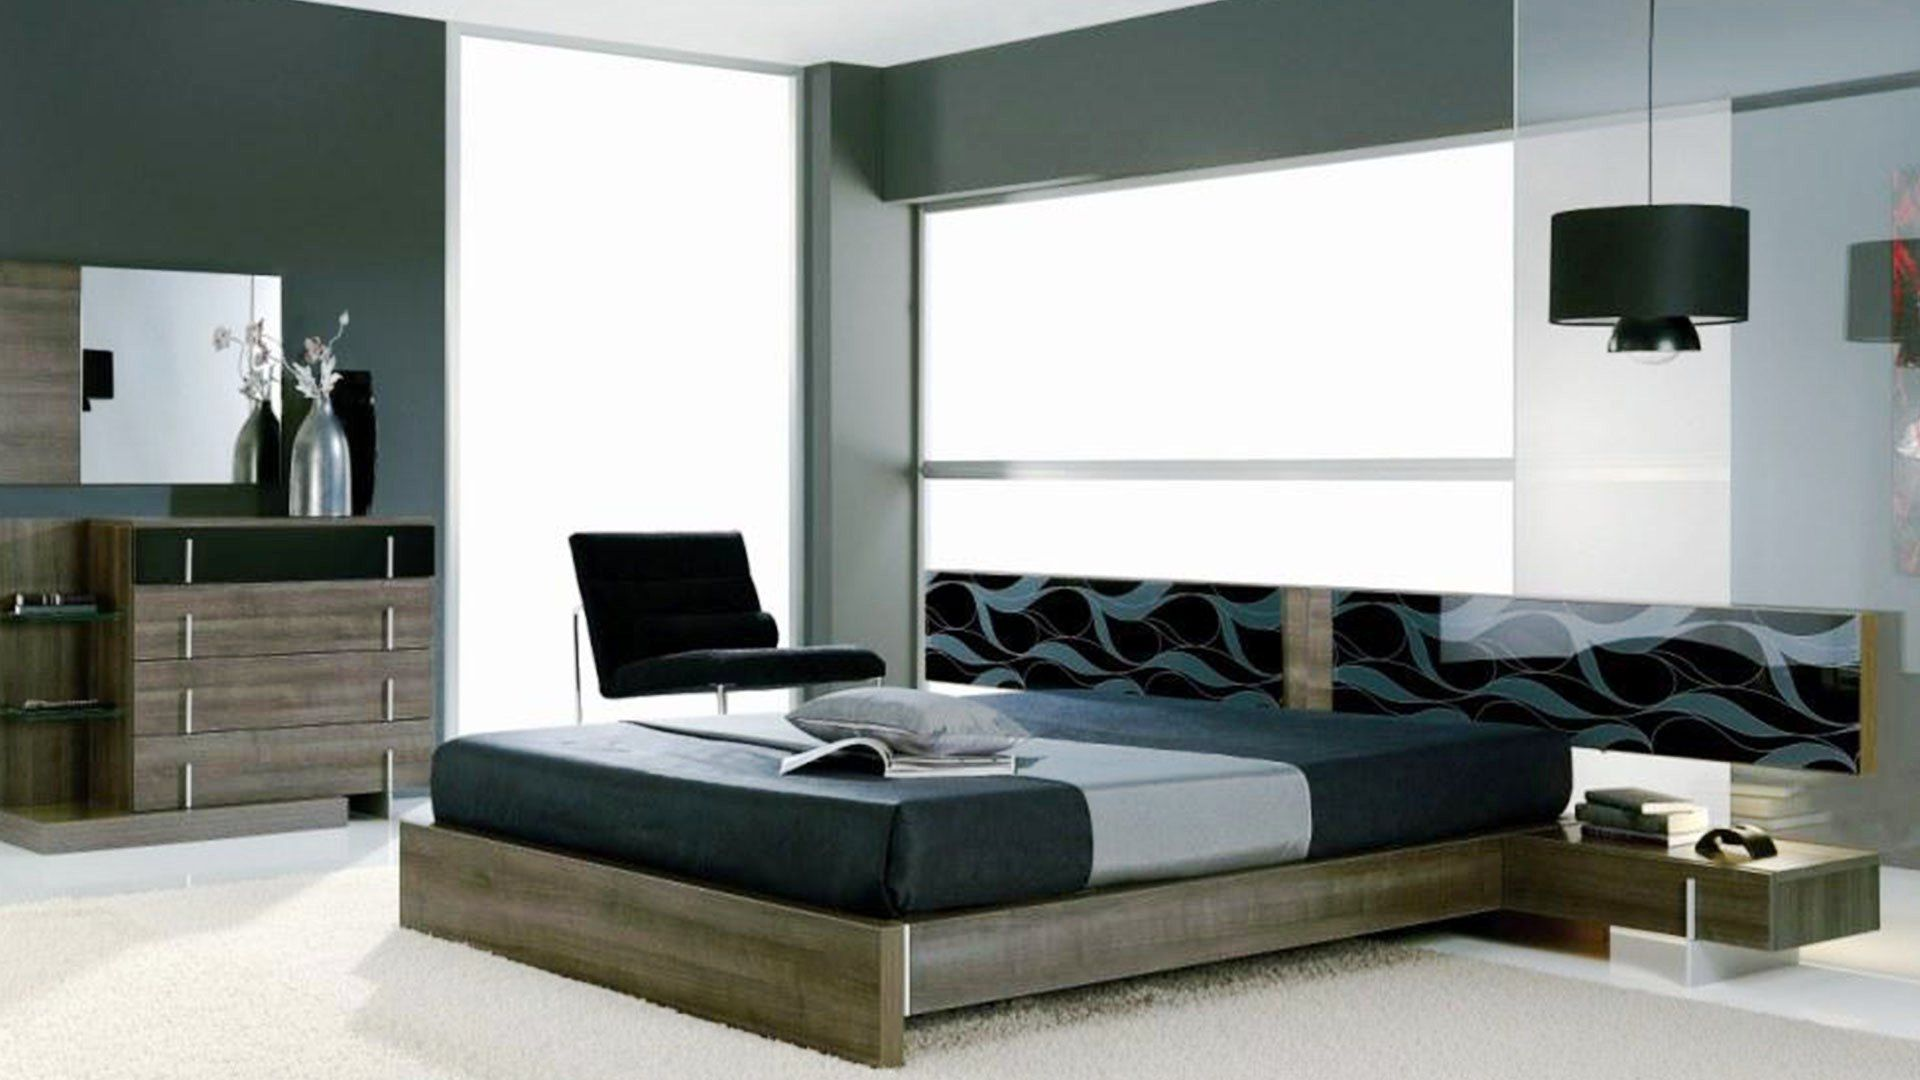 Medium Cool Bedroom Ideas For Men Plywood Picture